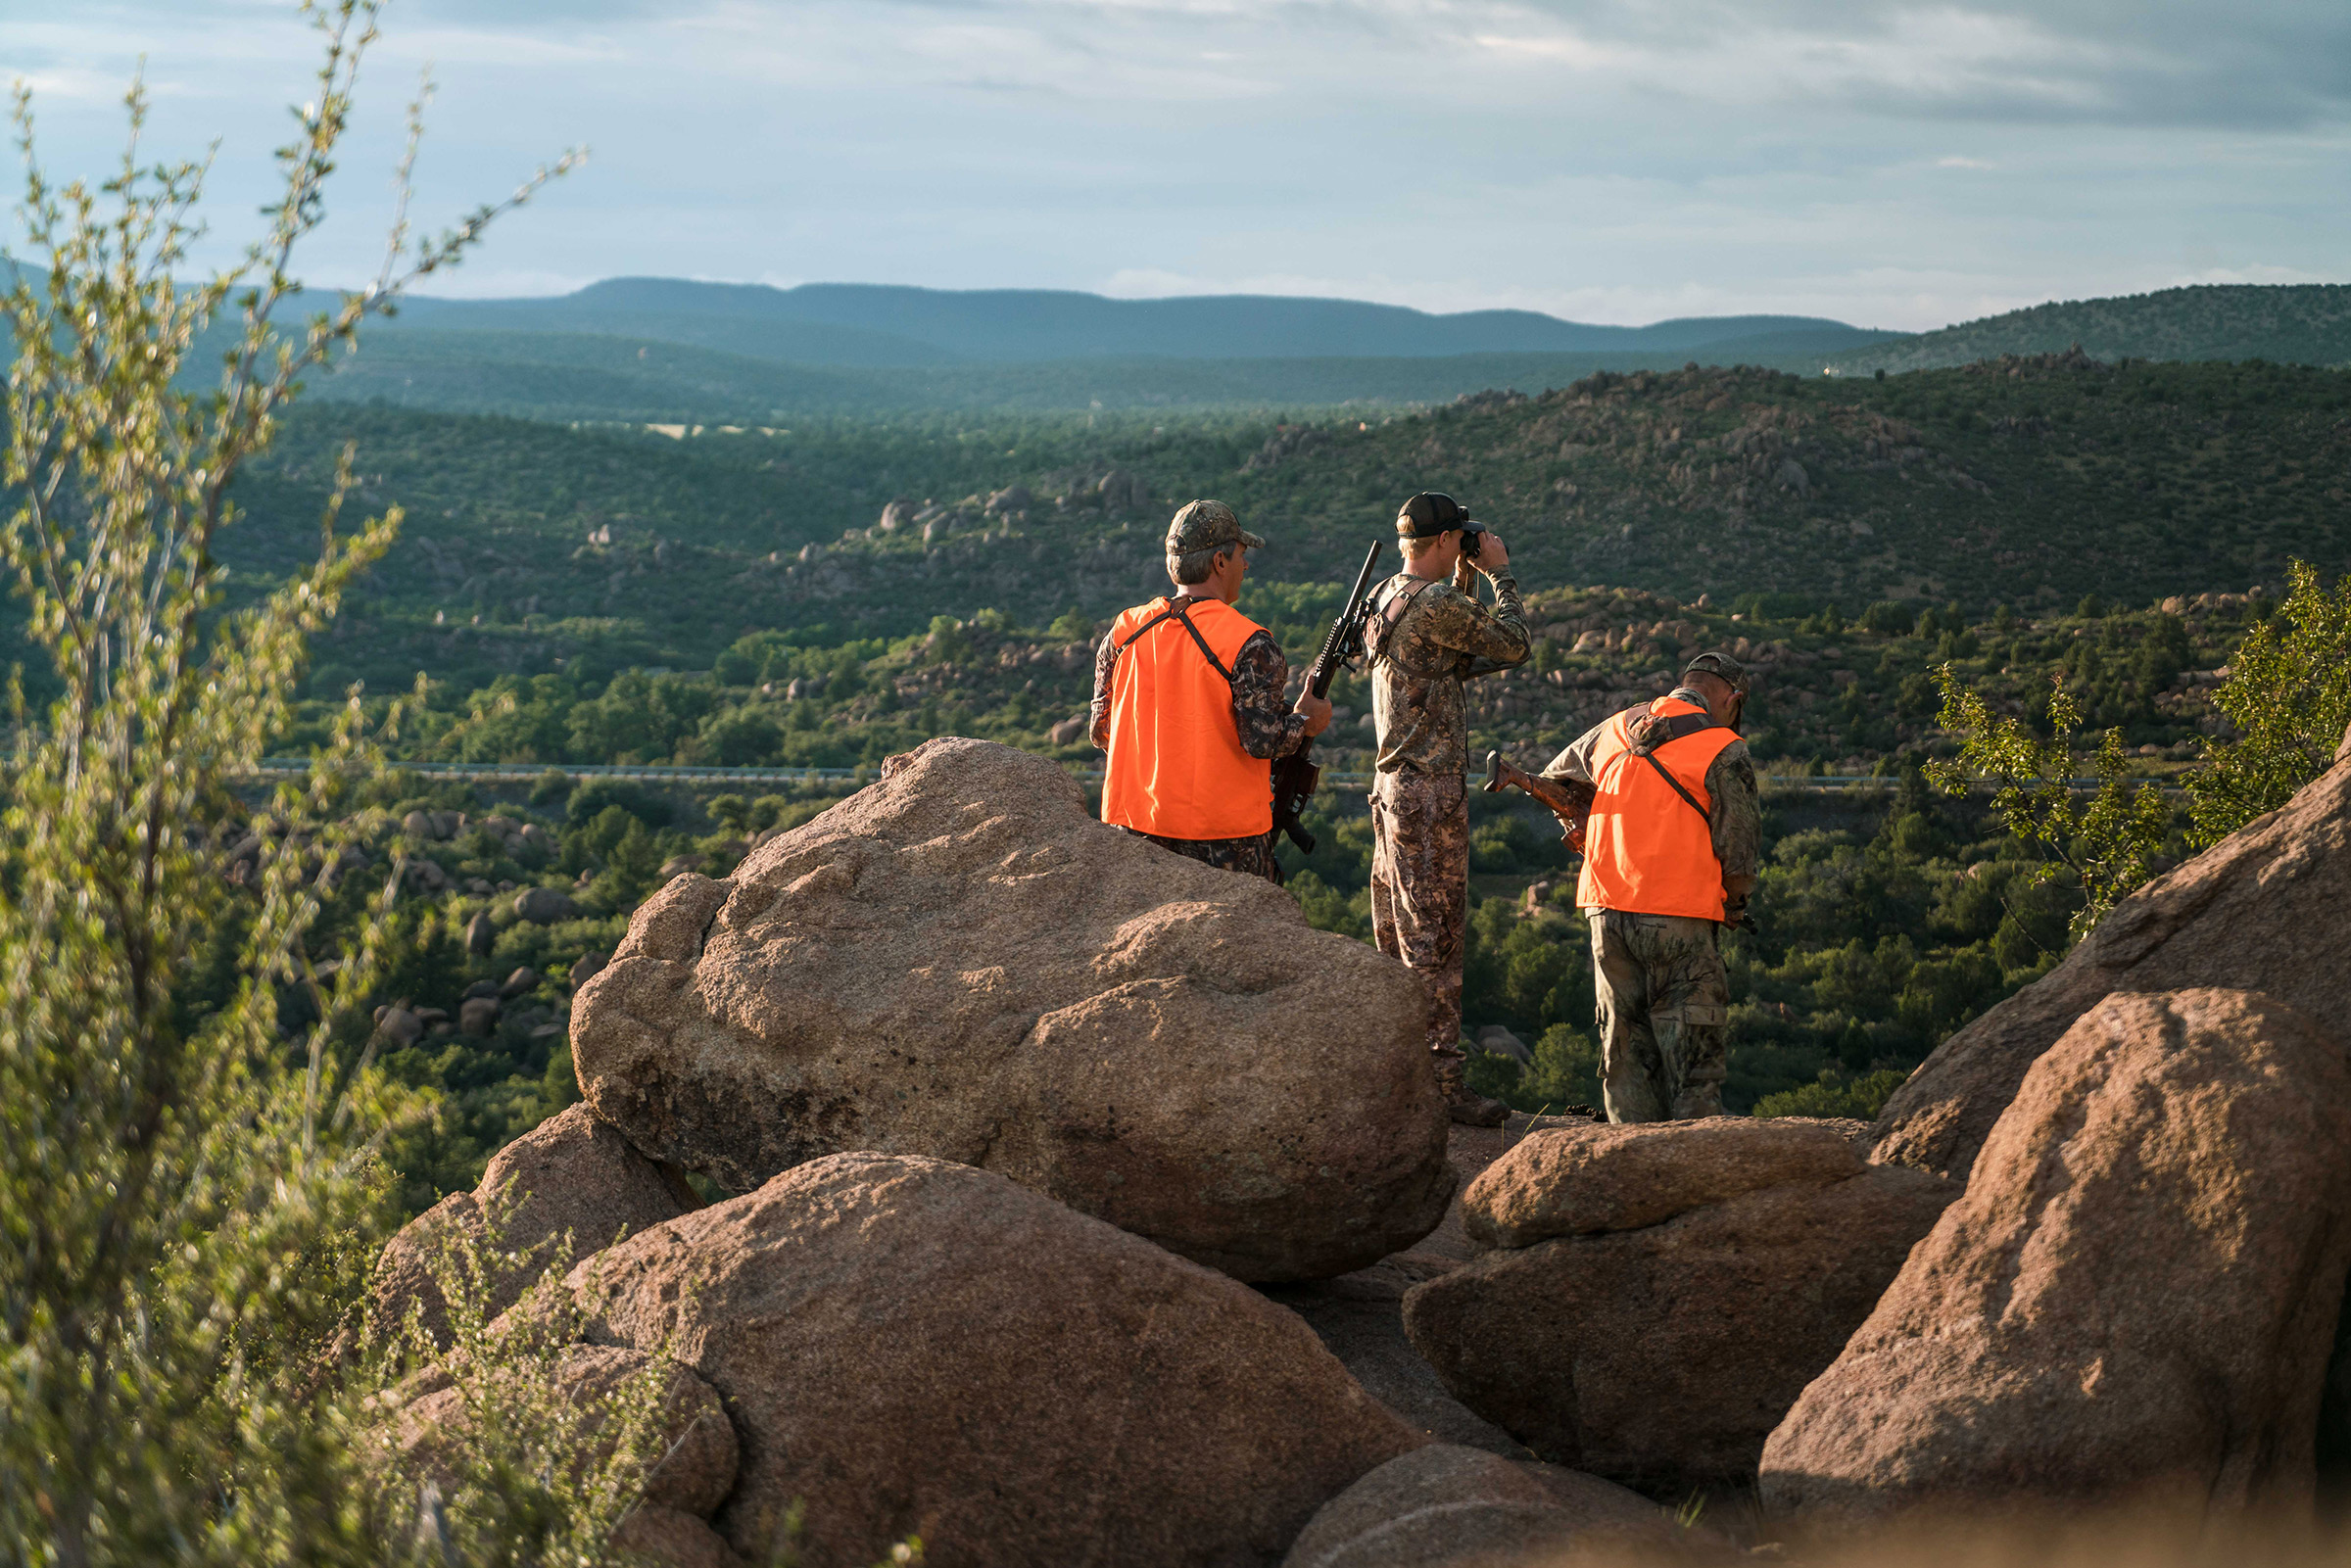 Three hunters on a boulder, holding guns